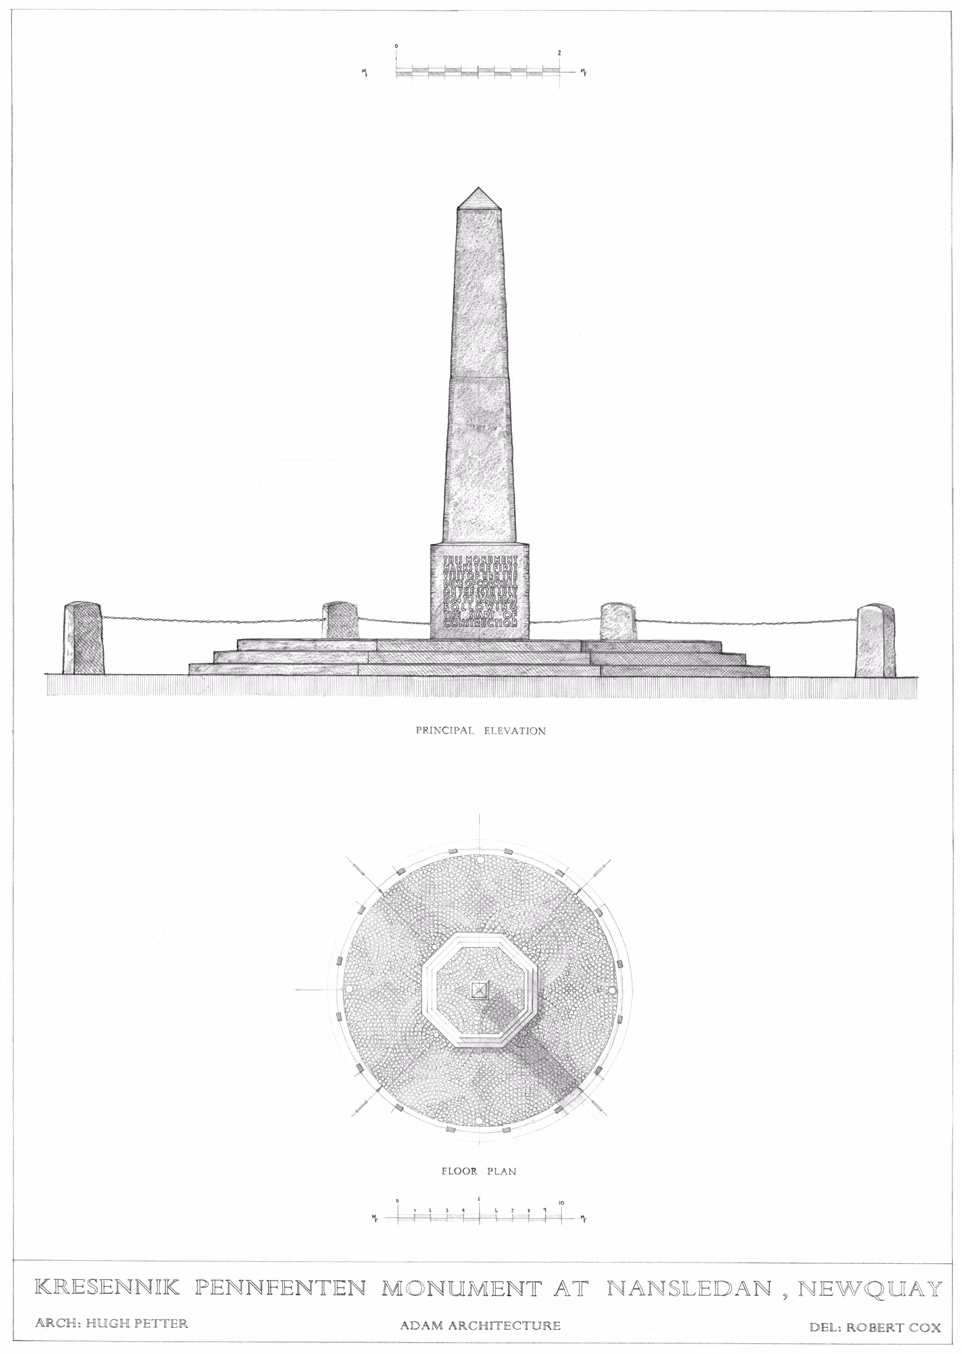 Nansledan monument drawing